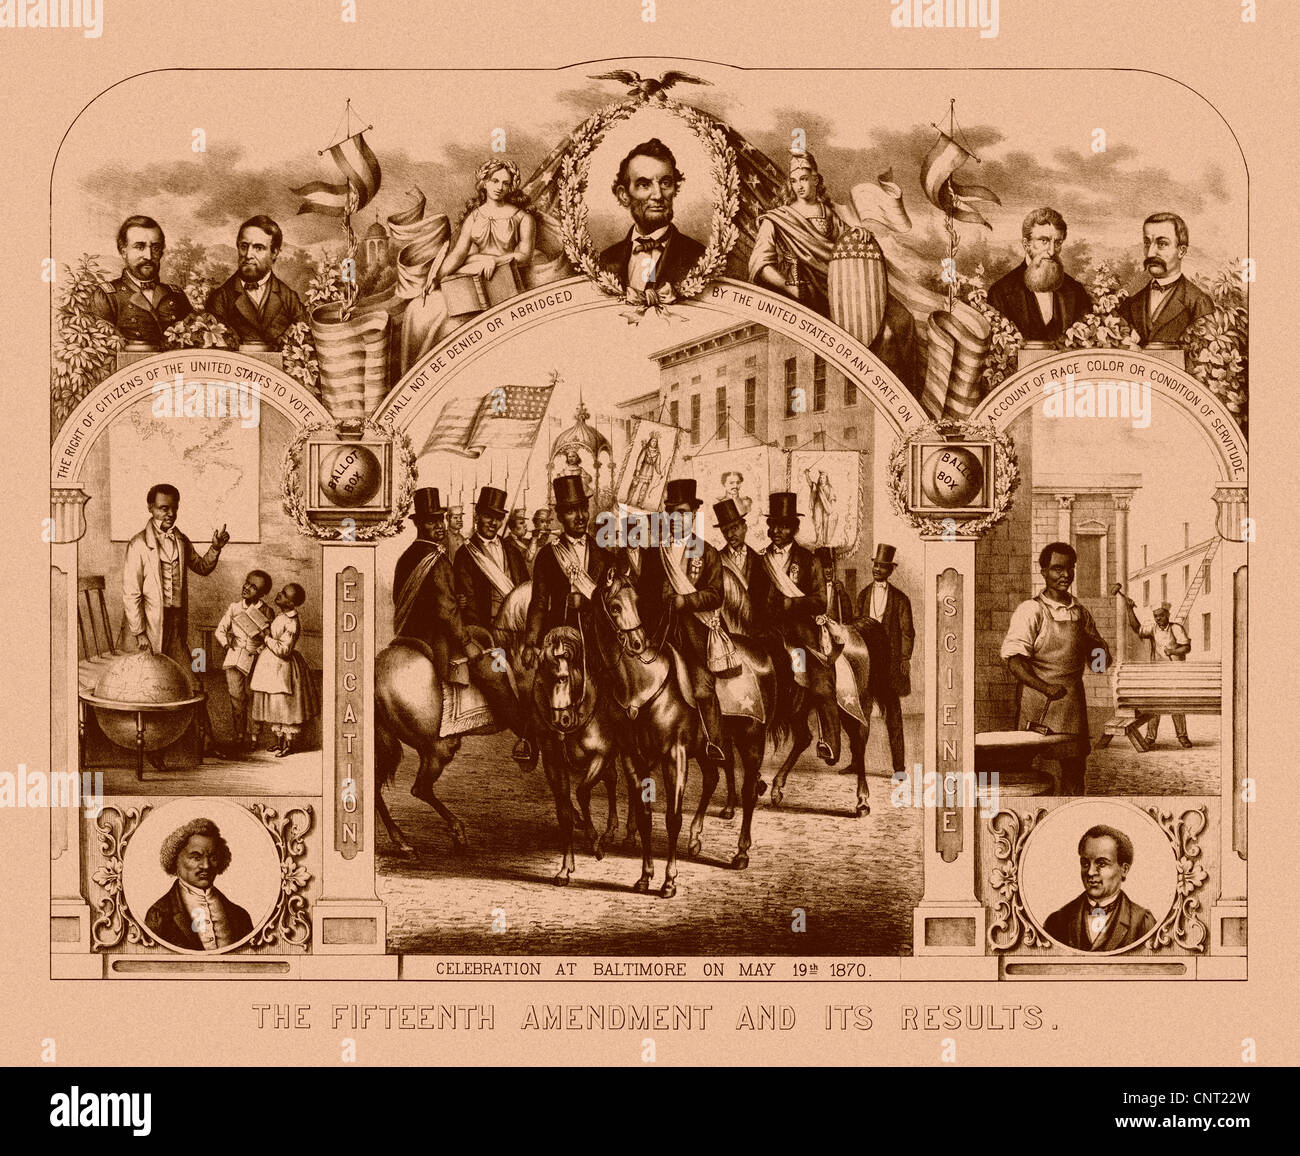 Digitally restored Civil War print of The Fifteenth Amendment And Its Results. - Stock Image